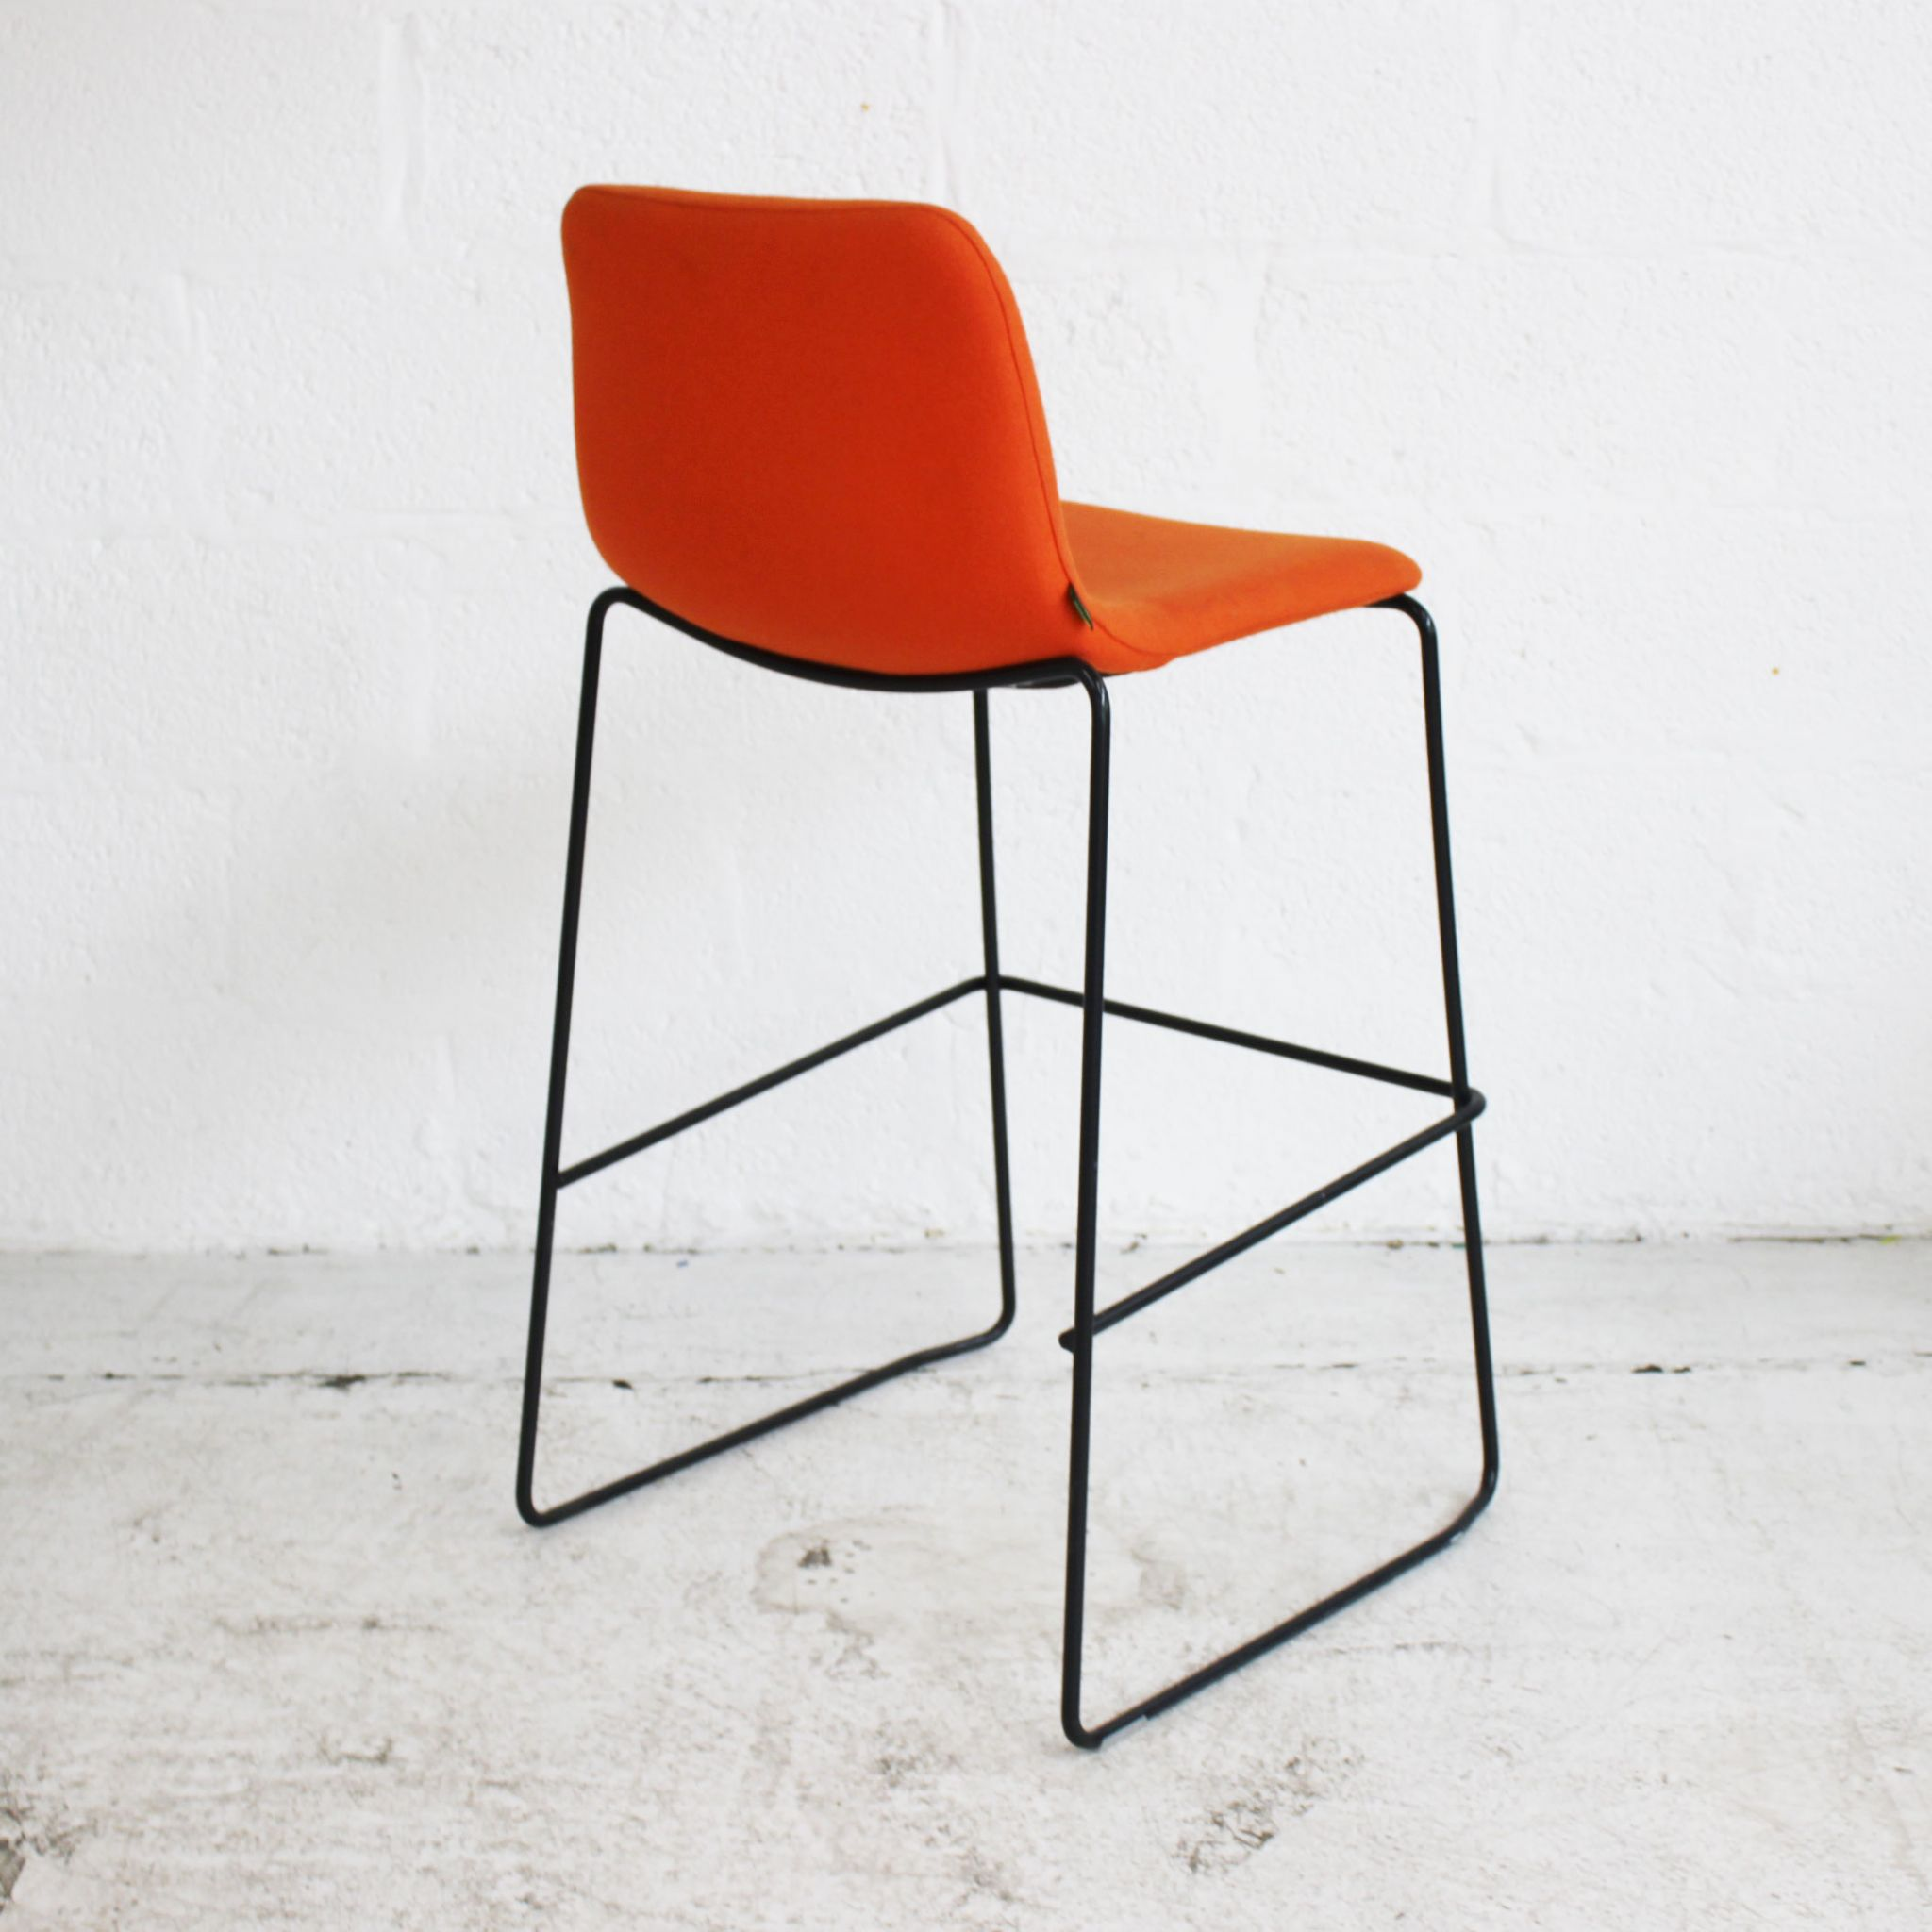 Magnificent Naughtone Viv Stool Orange Bar Stool Upholstered High Caraccident5 Cool Chair Designs And Ideas Caraccident5Info